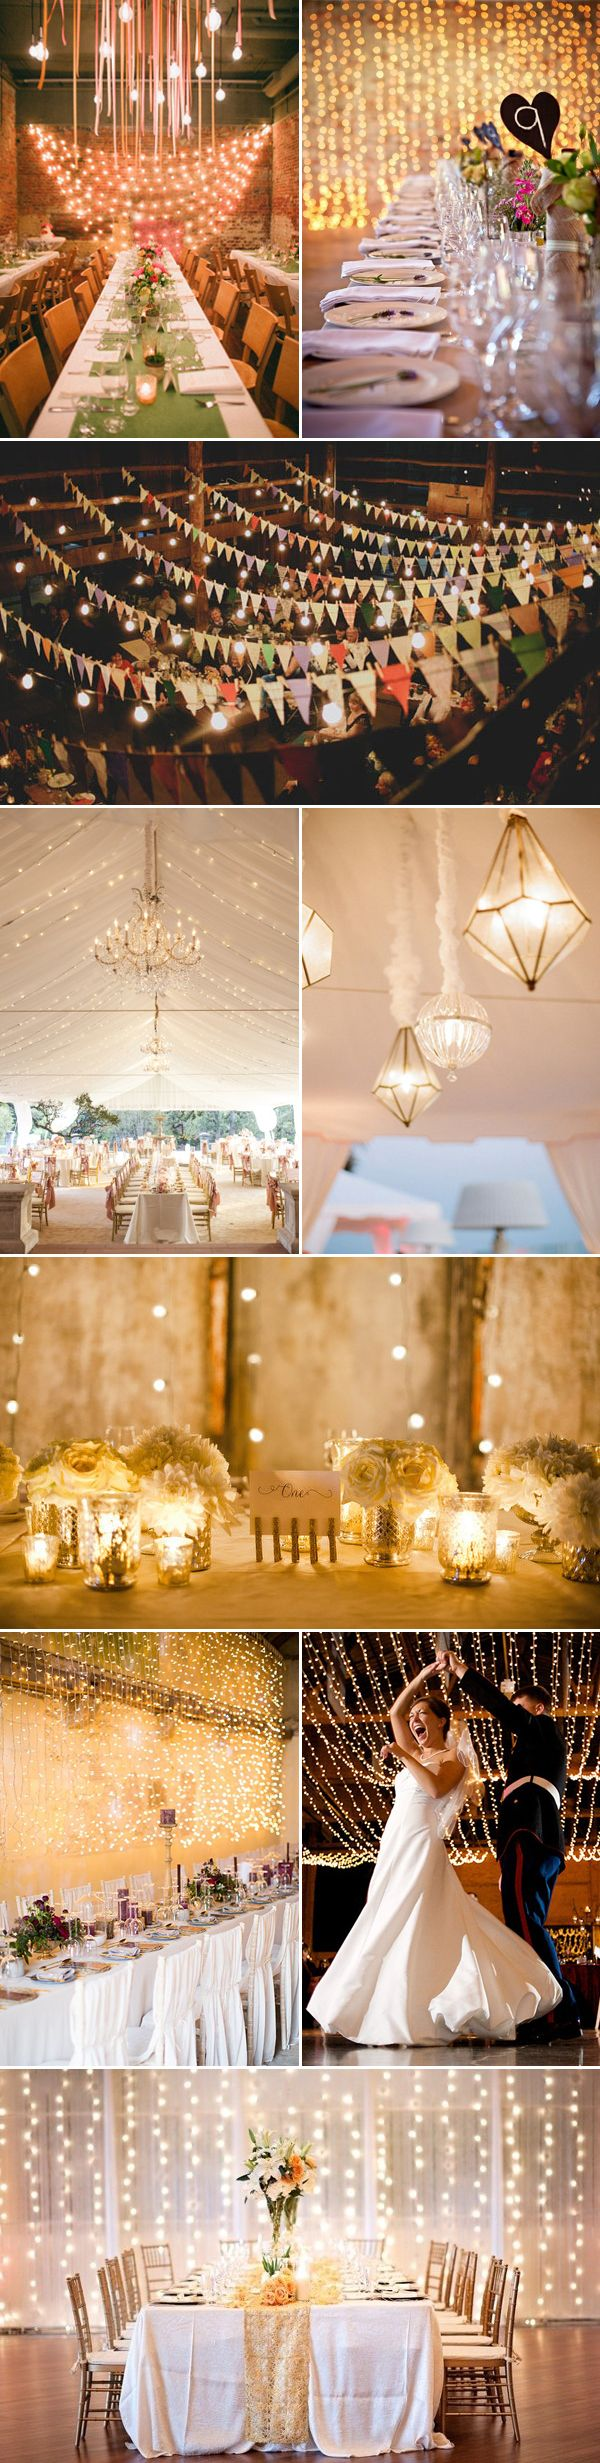 Magical String and Hanging Light Decoration - Indoor Lighting